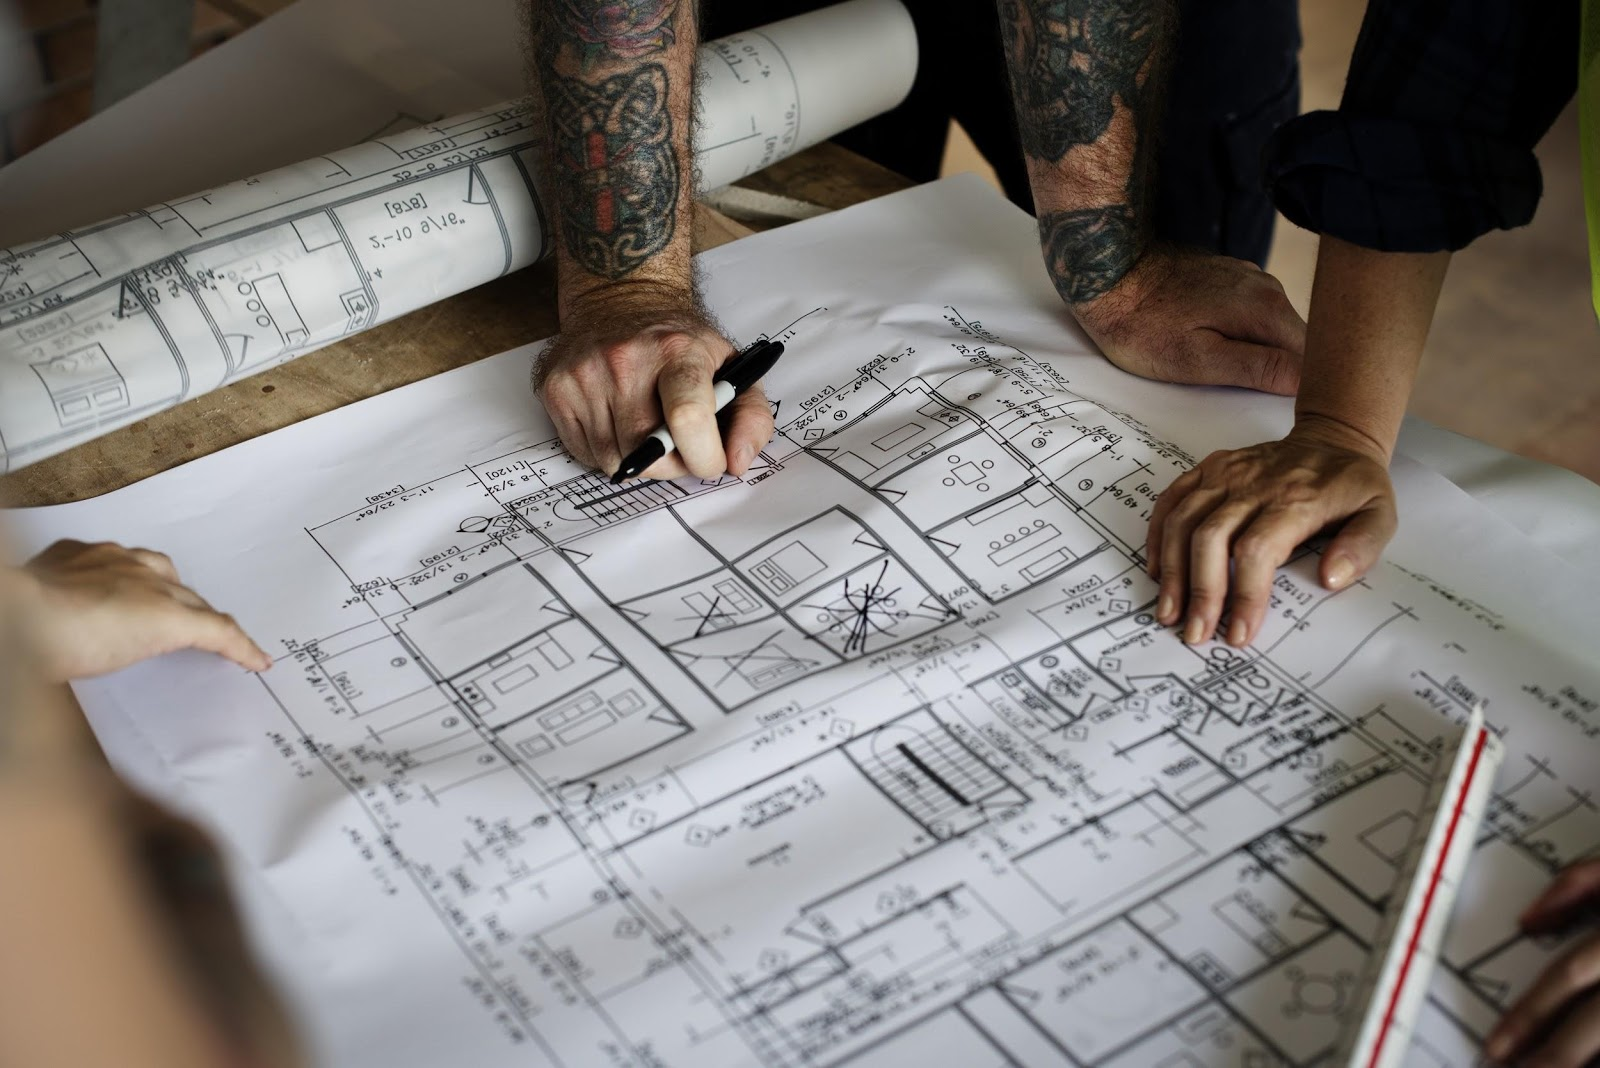 WHAT IS AN ARCHITECTURAL PROJECT FOR?